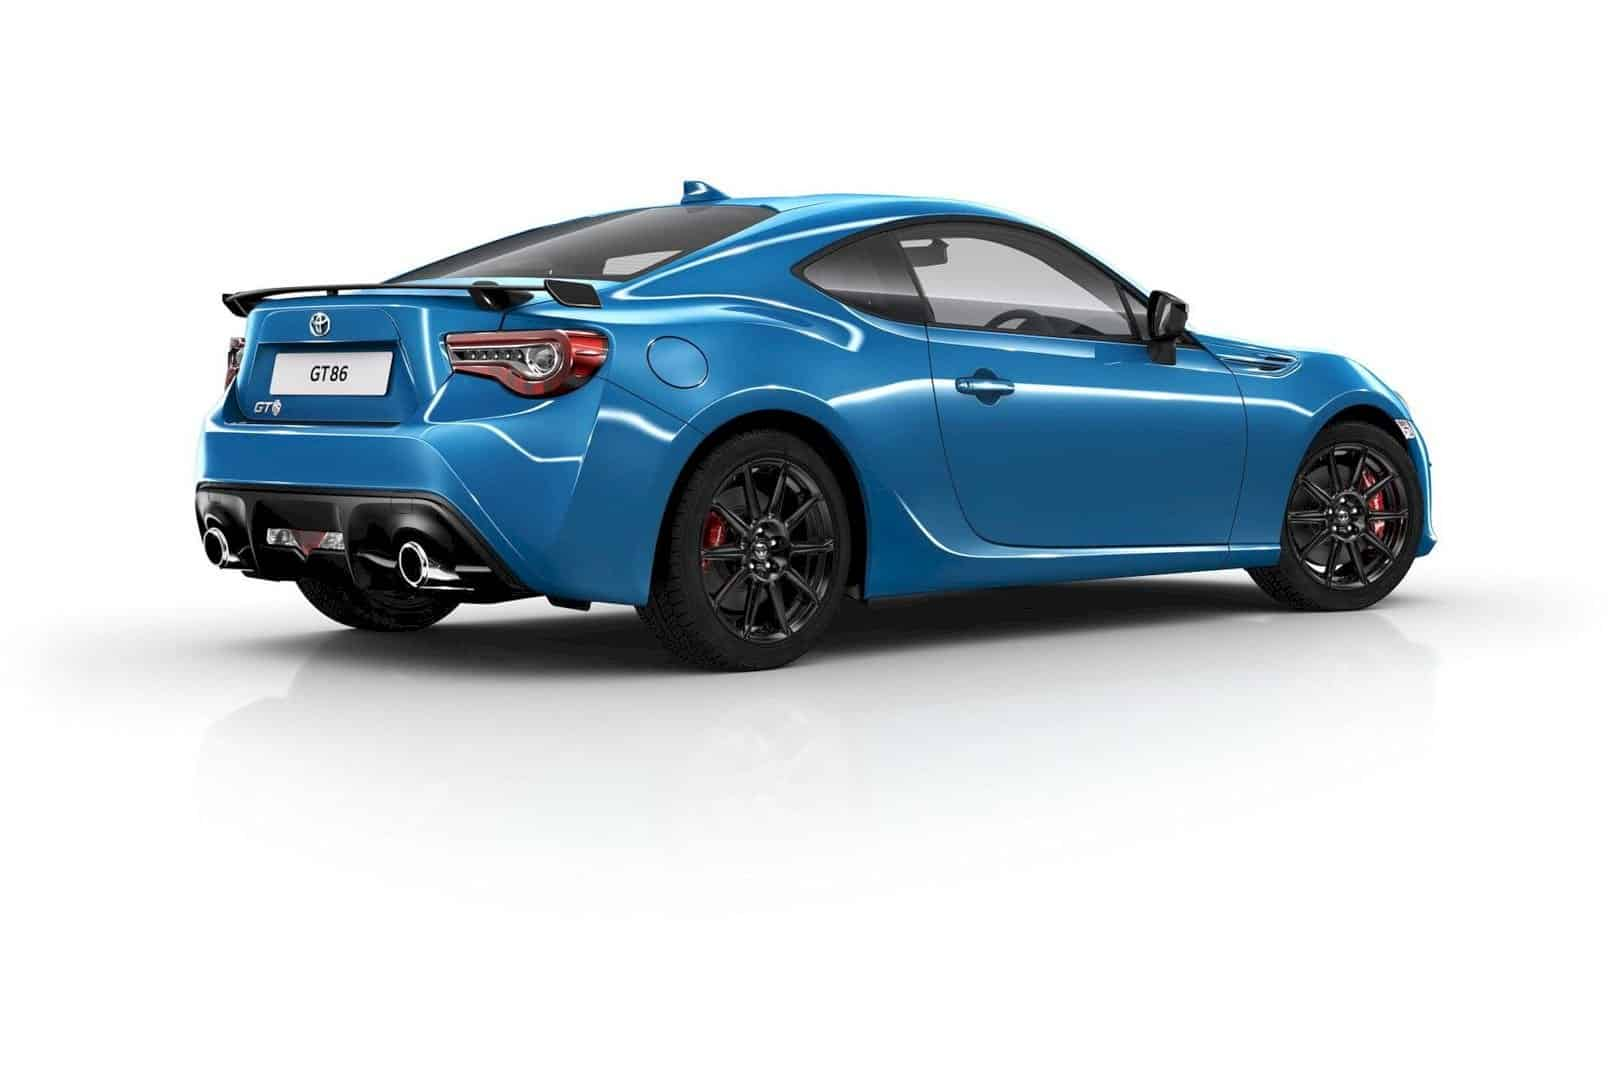 Toyota Gt86 Club Series Blue Edition 3